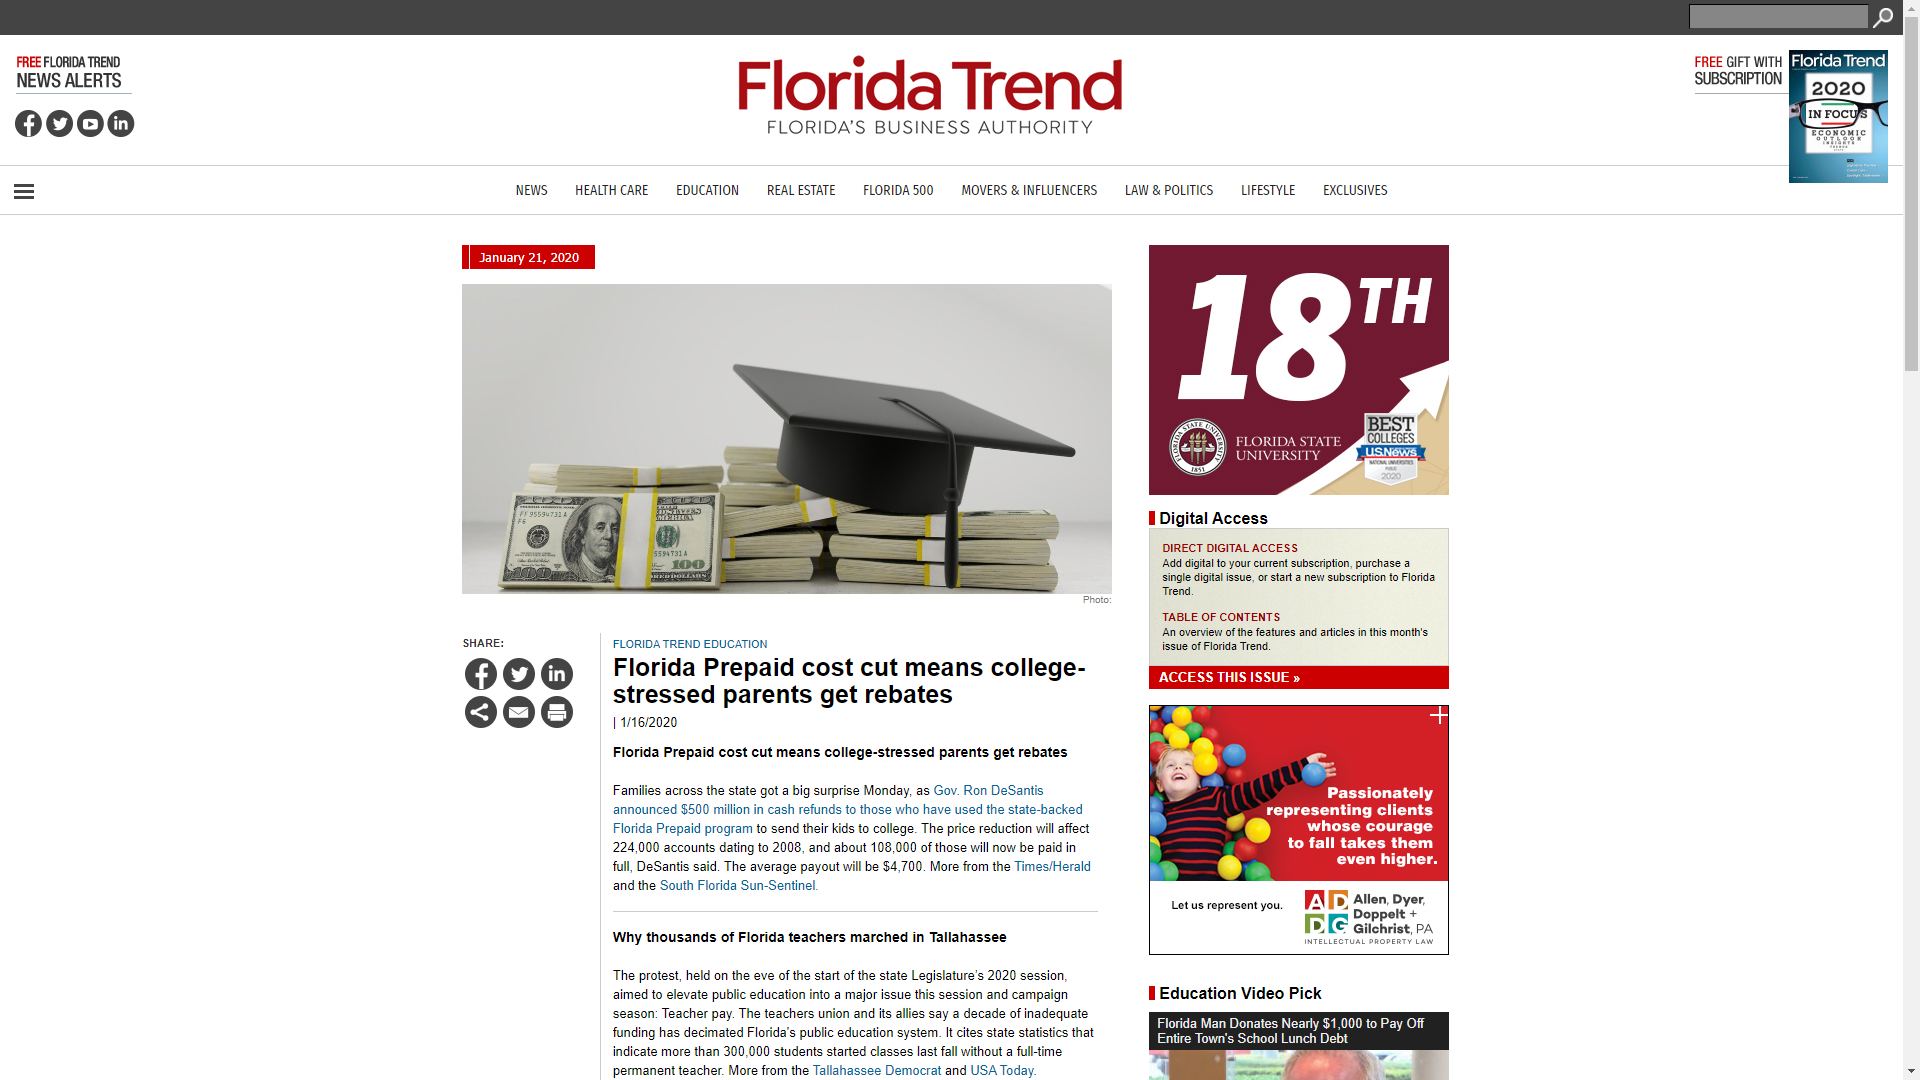 Screen shot of Florida Trend website